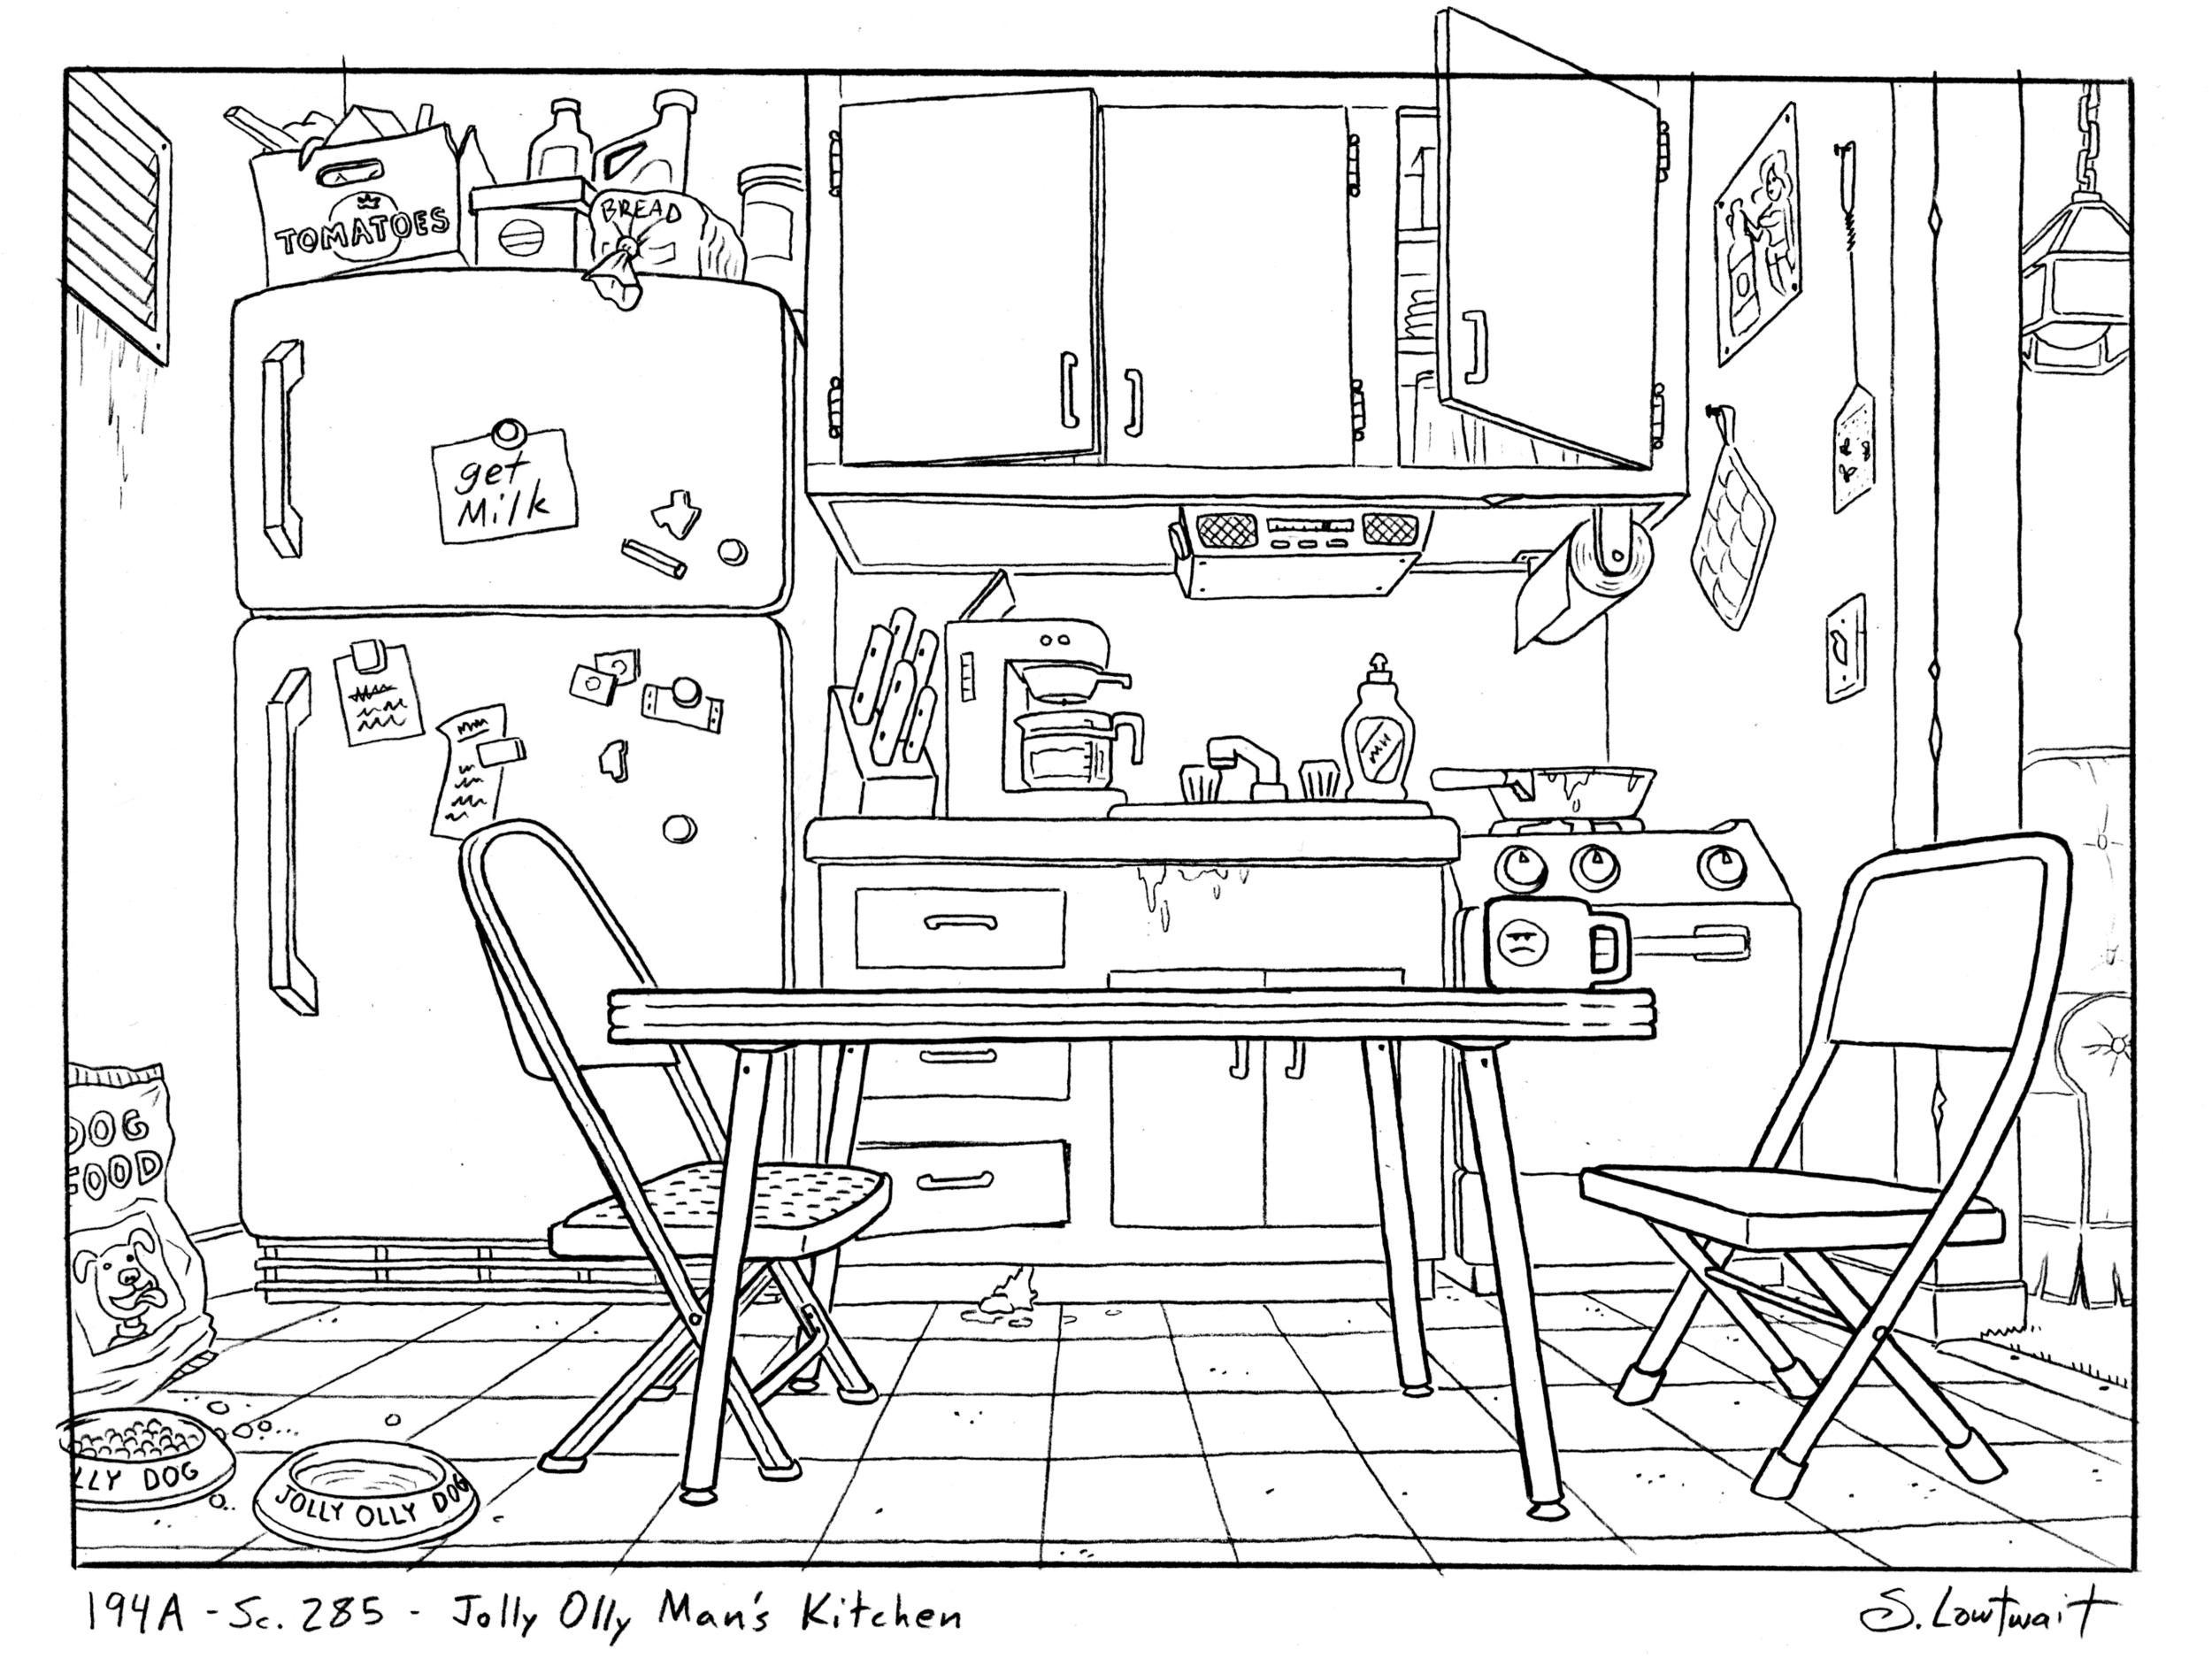 The ice cream man's kitchen ishow I imagined a low-income, 20 something, single guy would live. Mismatched metal chairs and a girly beer ad. This is another personal favorite for how it expandsthe character's story.